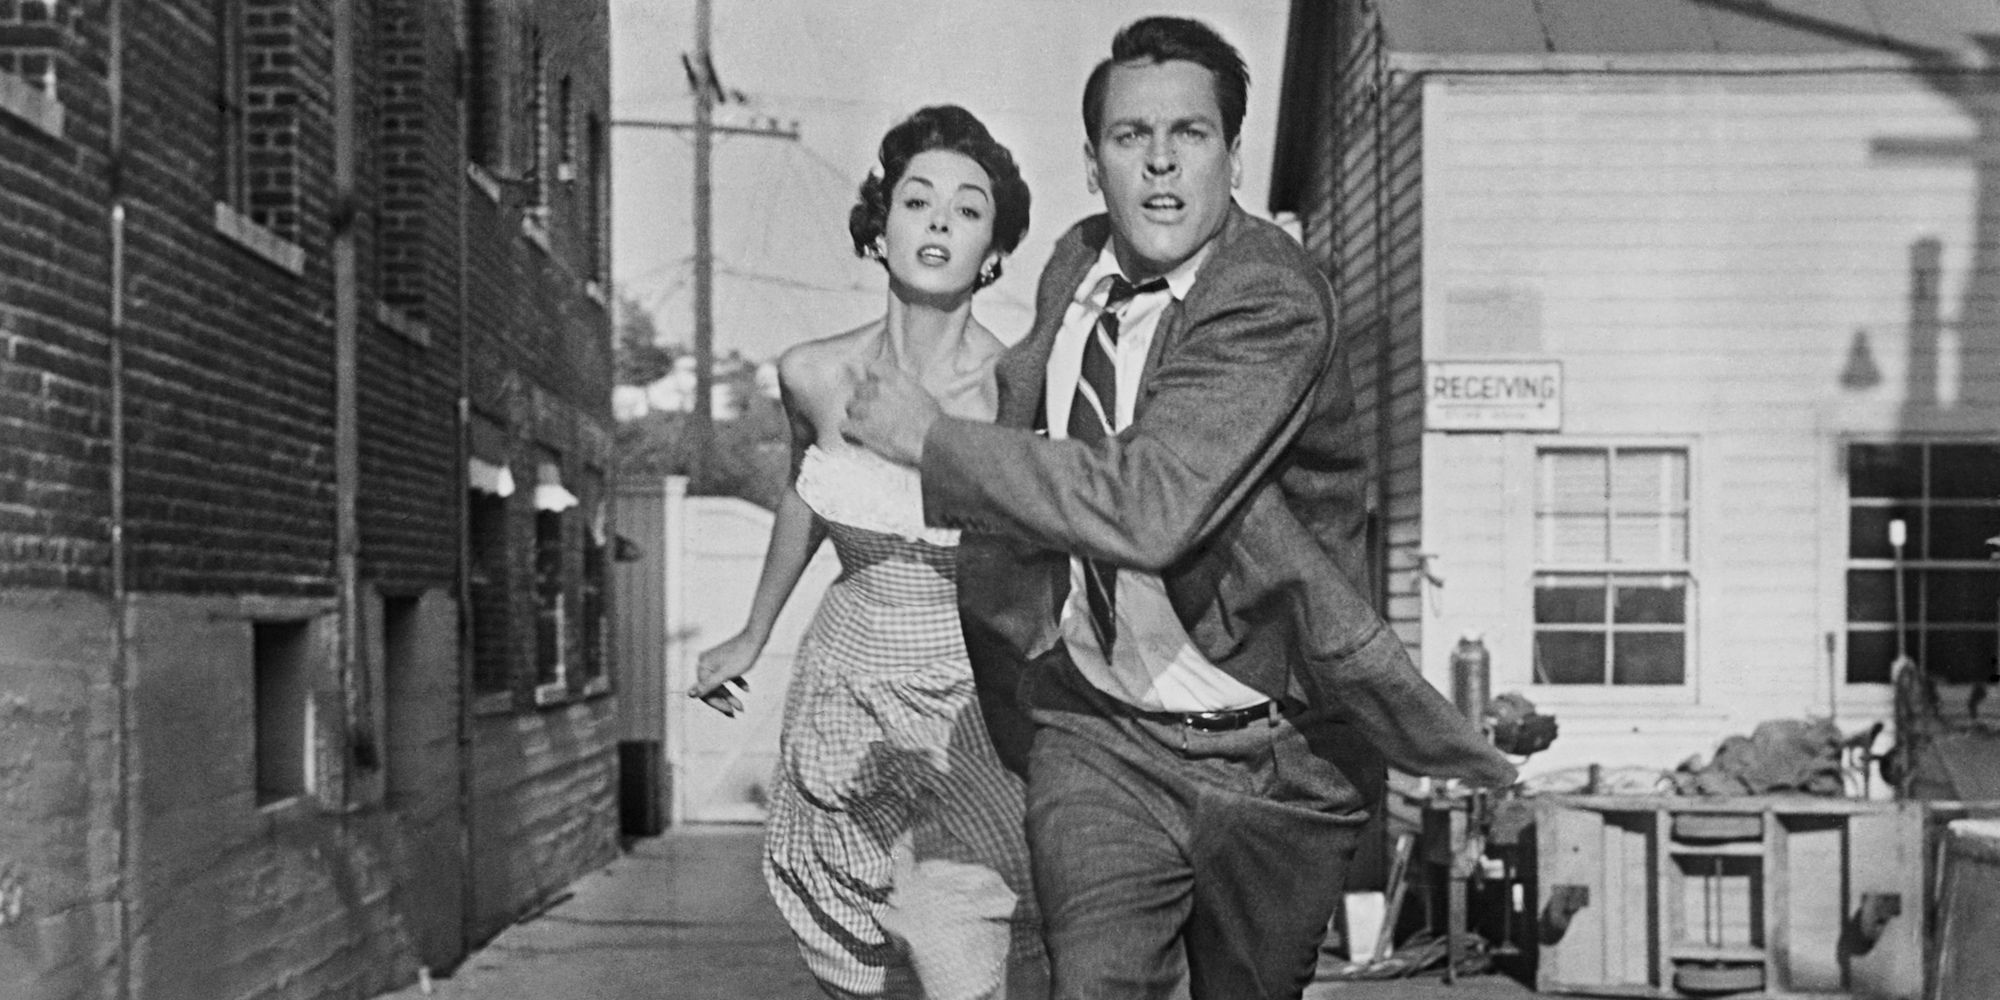 New Invasion Of The Body Snatchers Remake On The Way